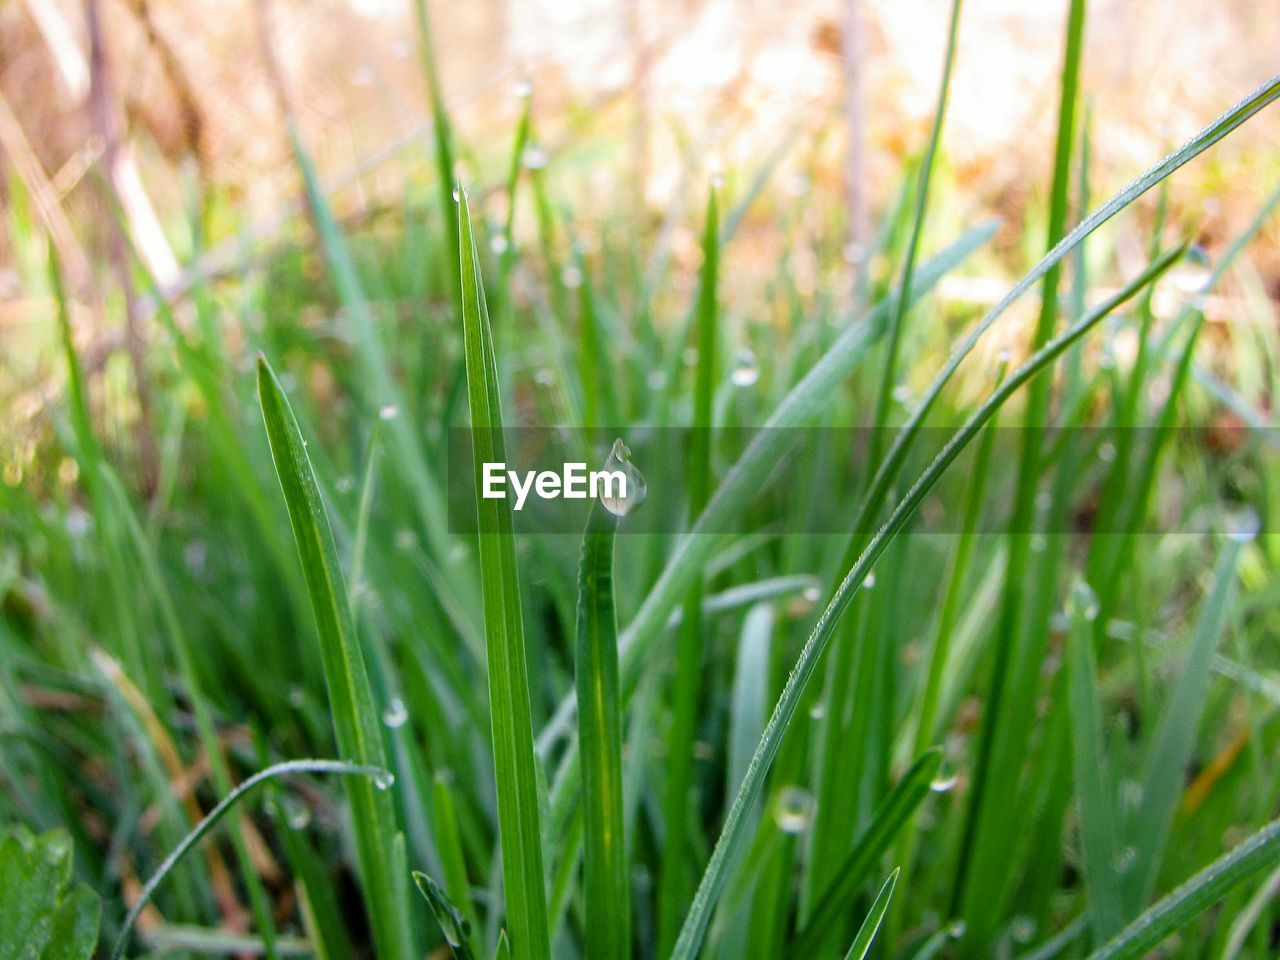 plant, green color, growth, drop, grass, nature, beauty in nature, water, selective focus, freshness, wet, blade of grass, land, close-up, day, field, no people, dew, fragility, outdoors, purity, rain, raindrop